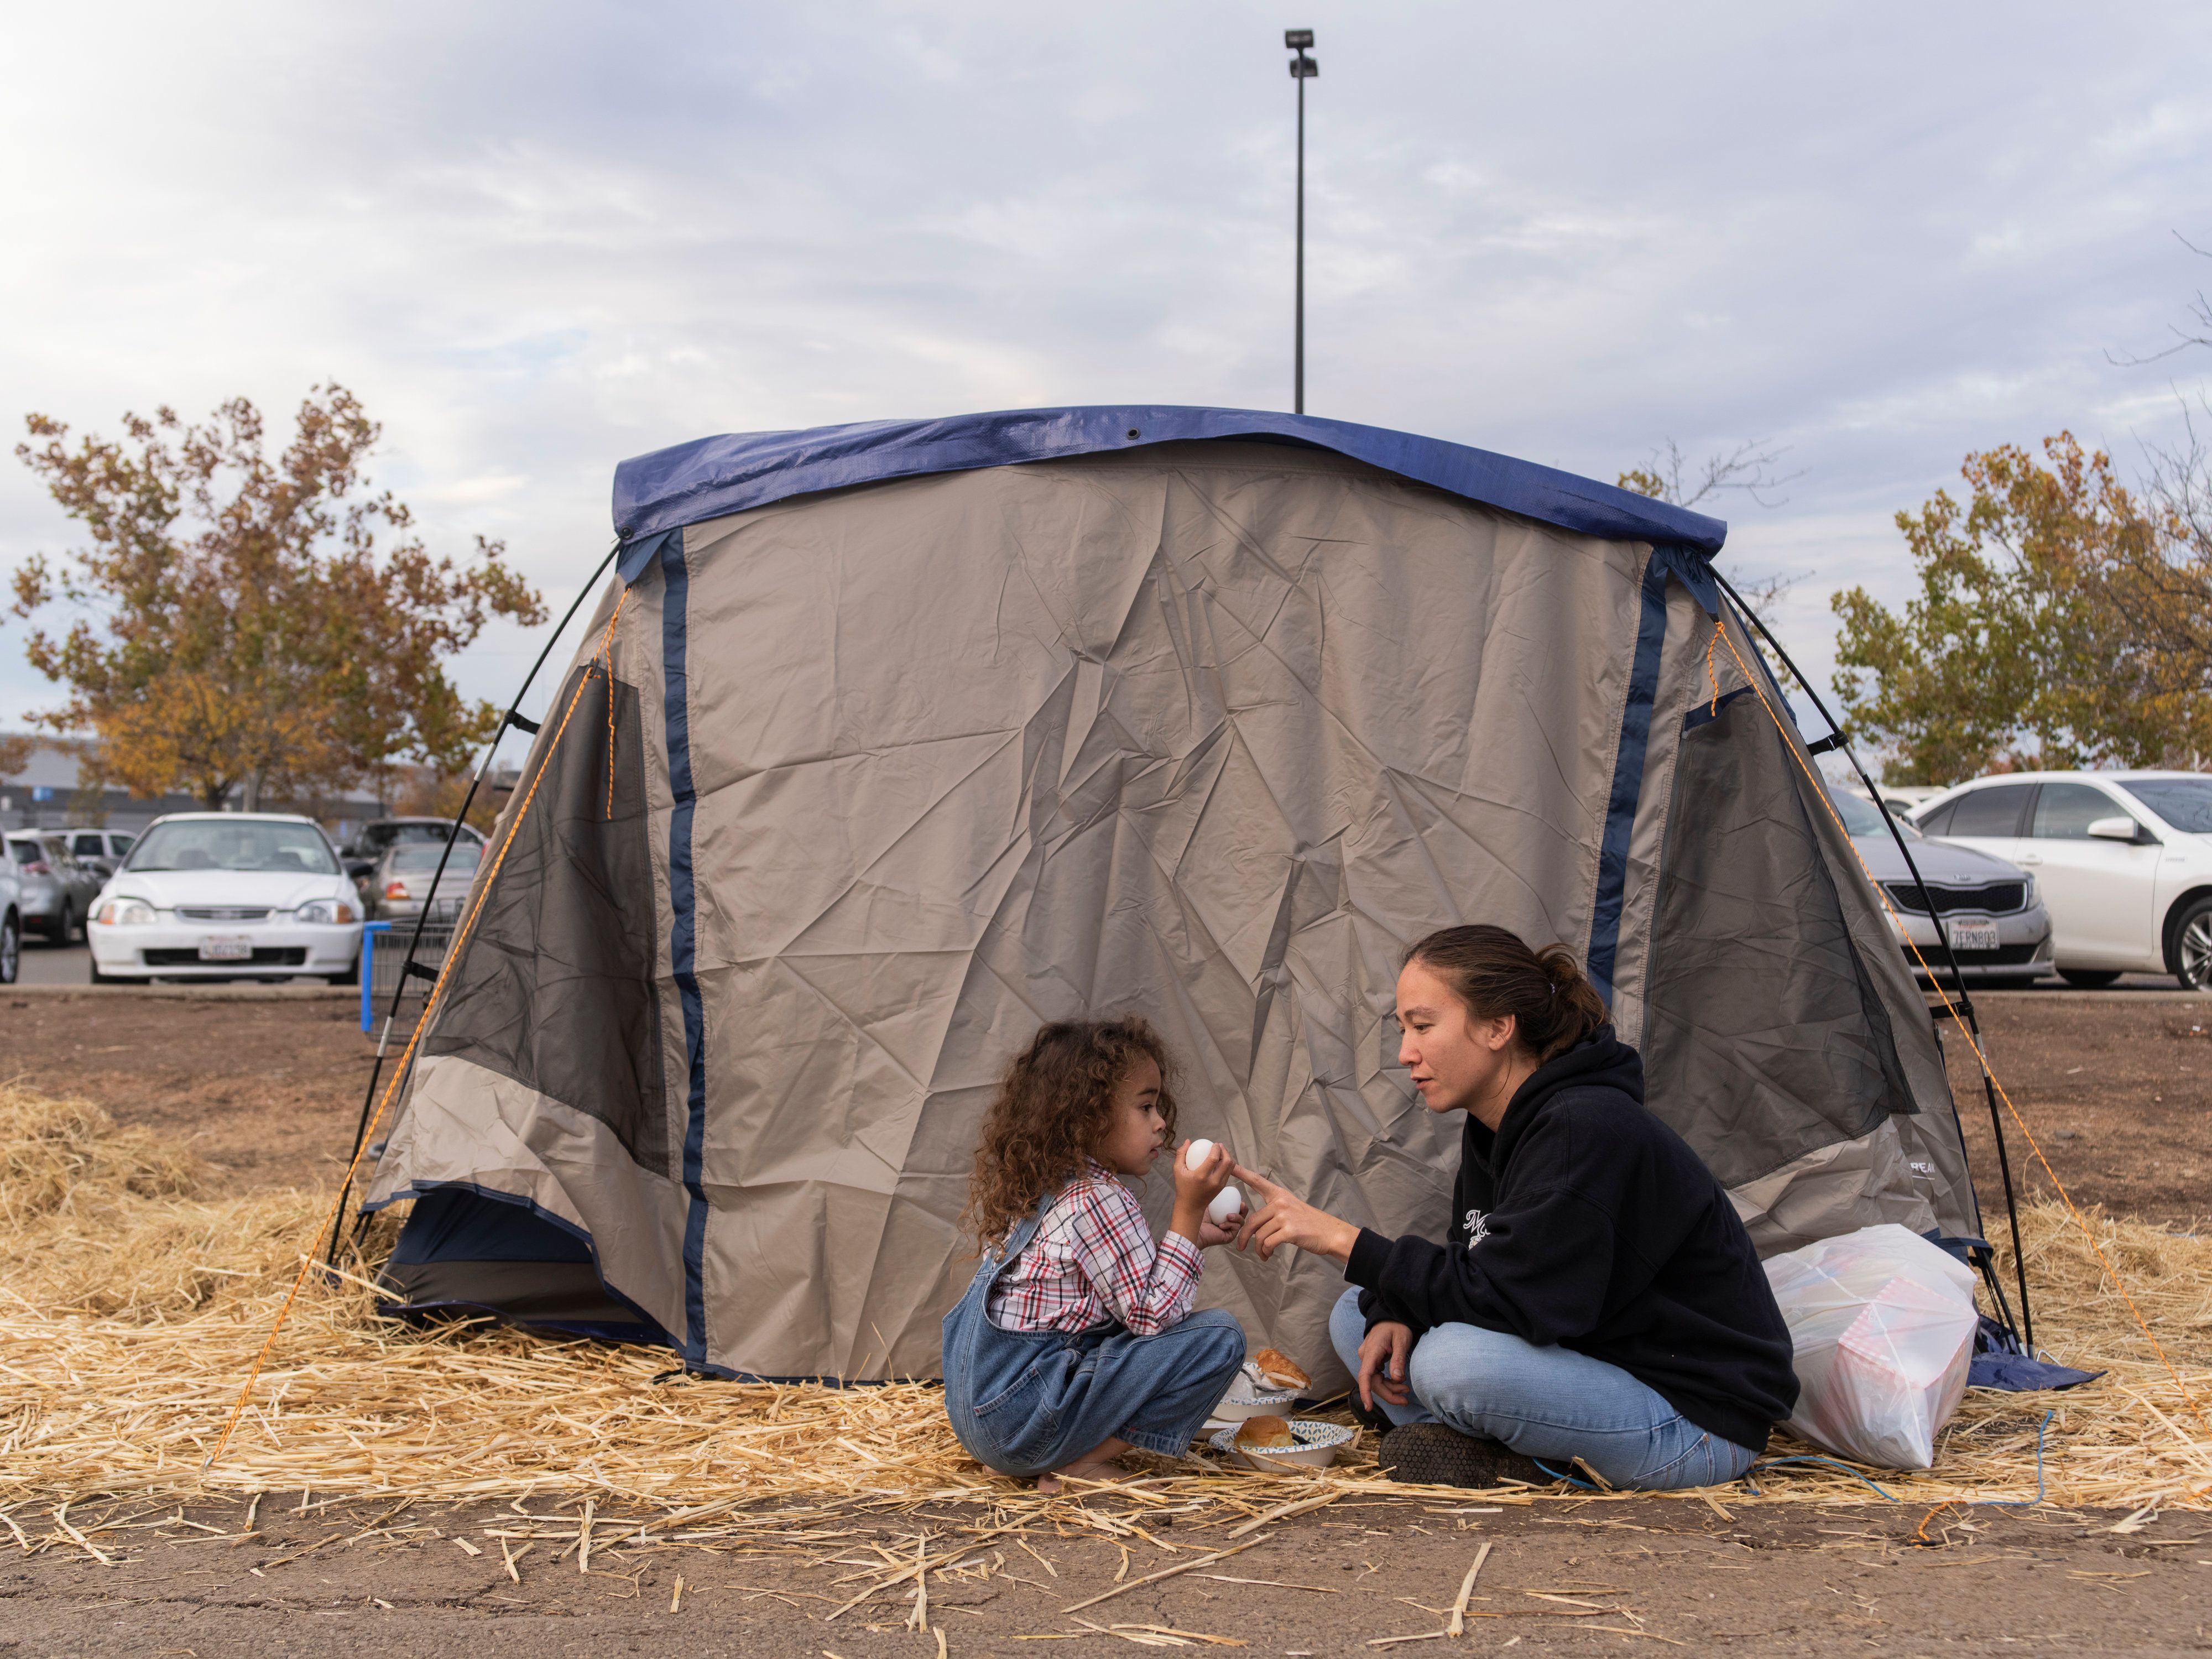 Rubyjade Stewart and her son, Rene, eat lunch at their tent in the Walmart lot on Wednesday between rain showers. By Thursday afternoon, there were flash flood and mudslide warnings in the area.